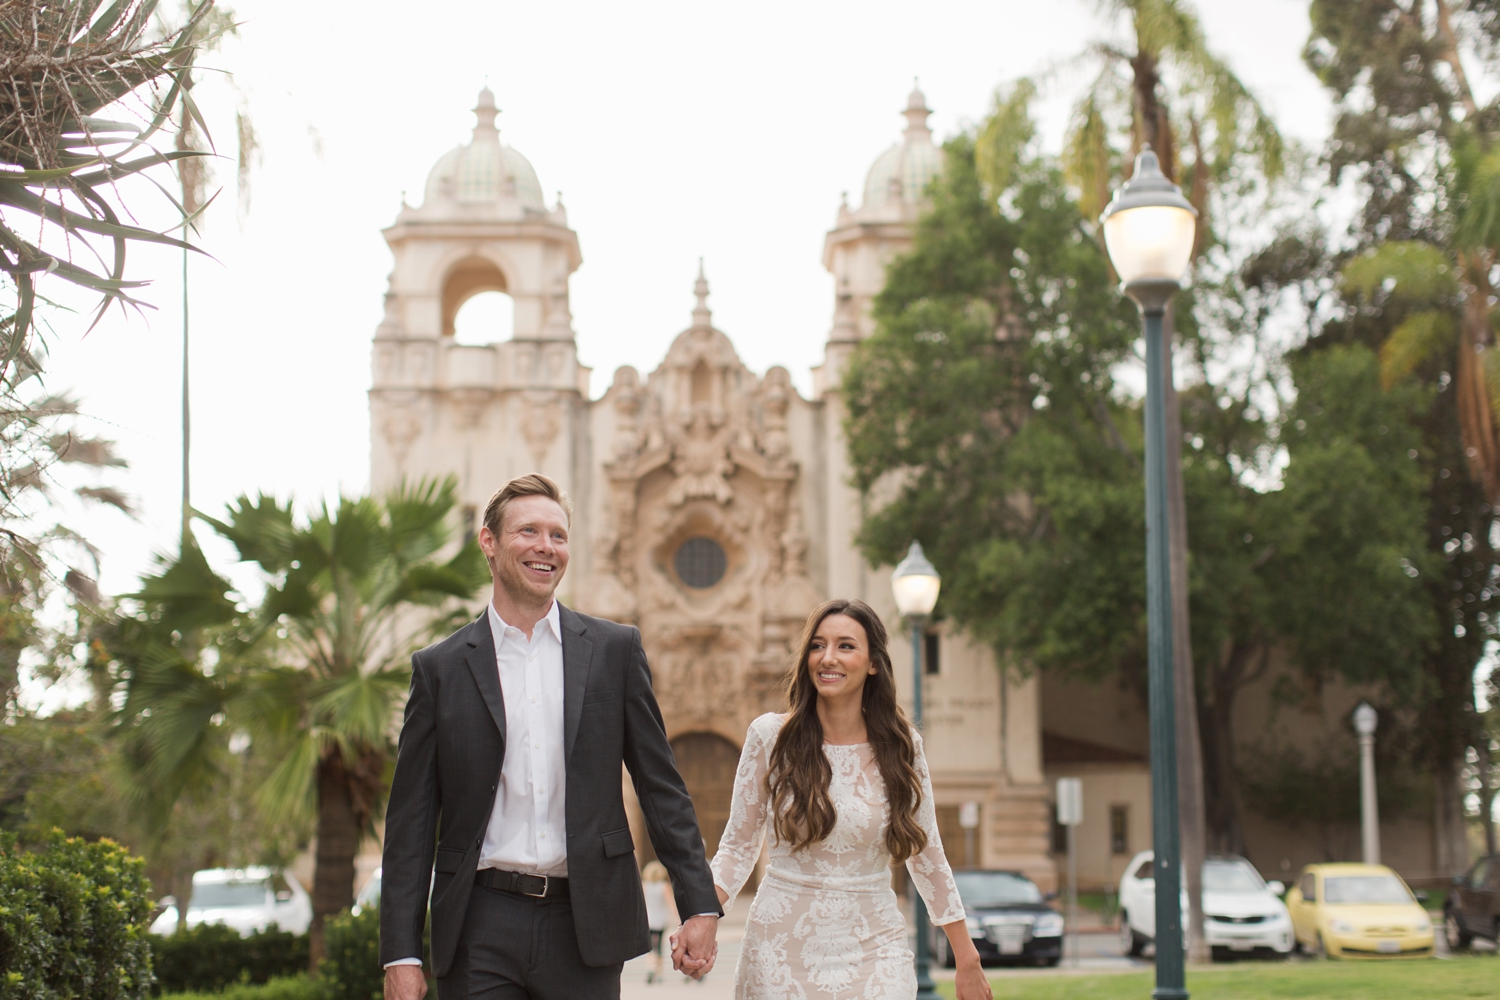 san.diego_.engagement.photography.shewanders.wedding.photography478.jpg.engagement.photography.shewanders.wedding.photography.jpg